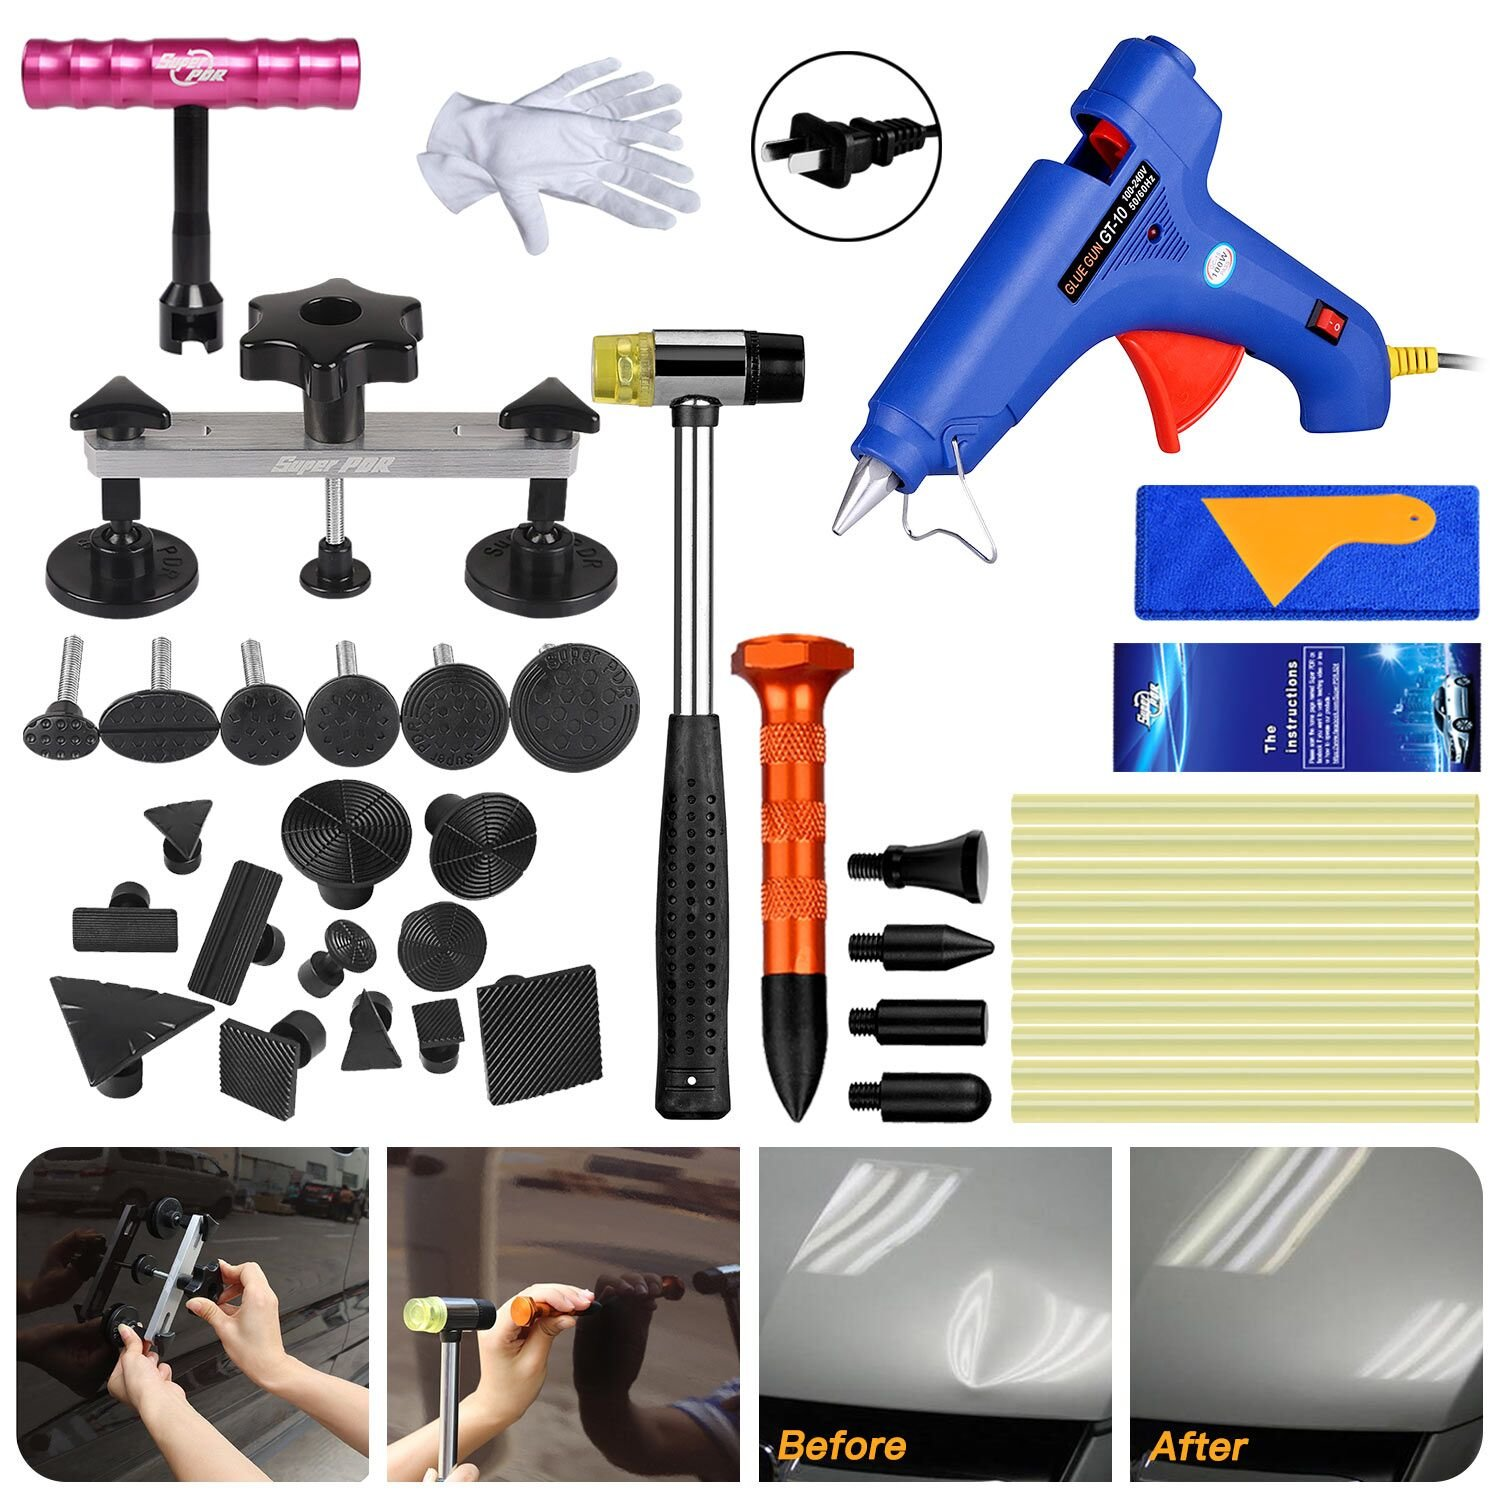 FLY5D 45Pcs DIY Car Paintless Dent Glue Puller Removal Tool Kits for Car Door Ding Repair Power Hand Tools